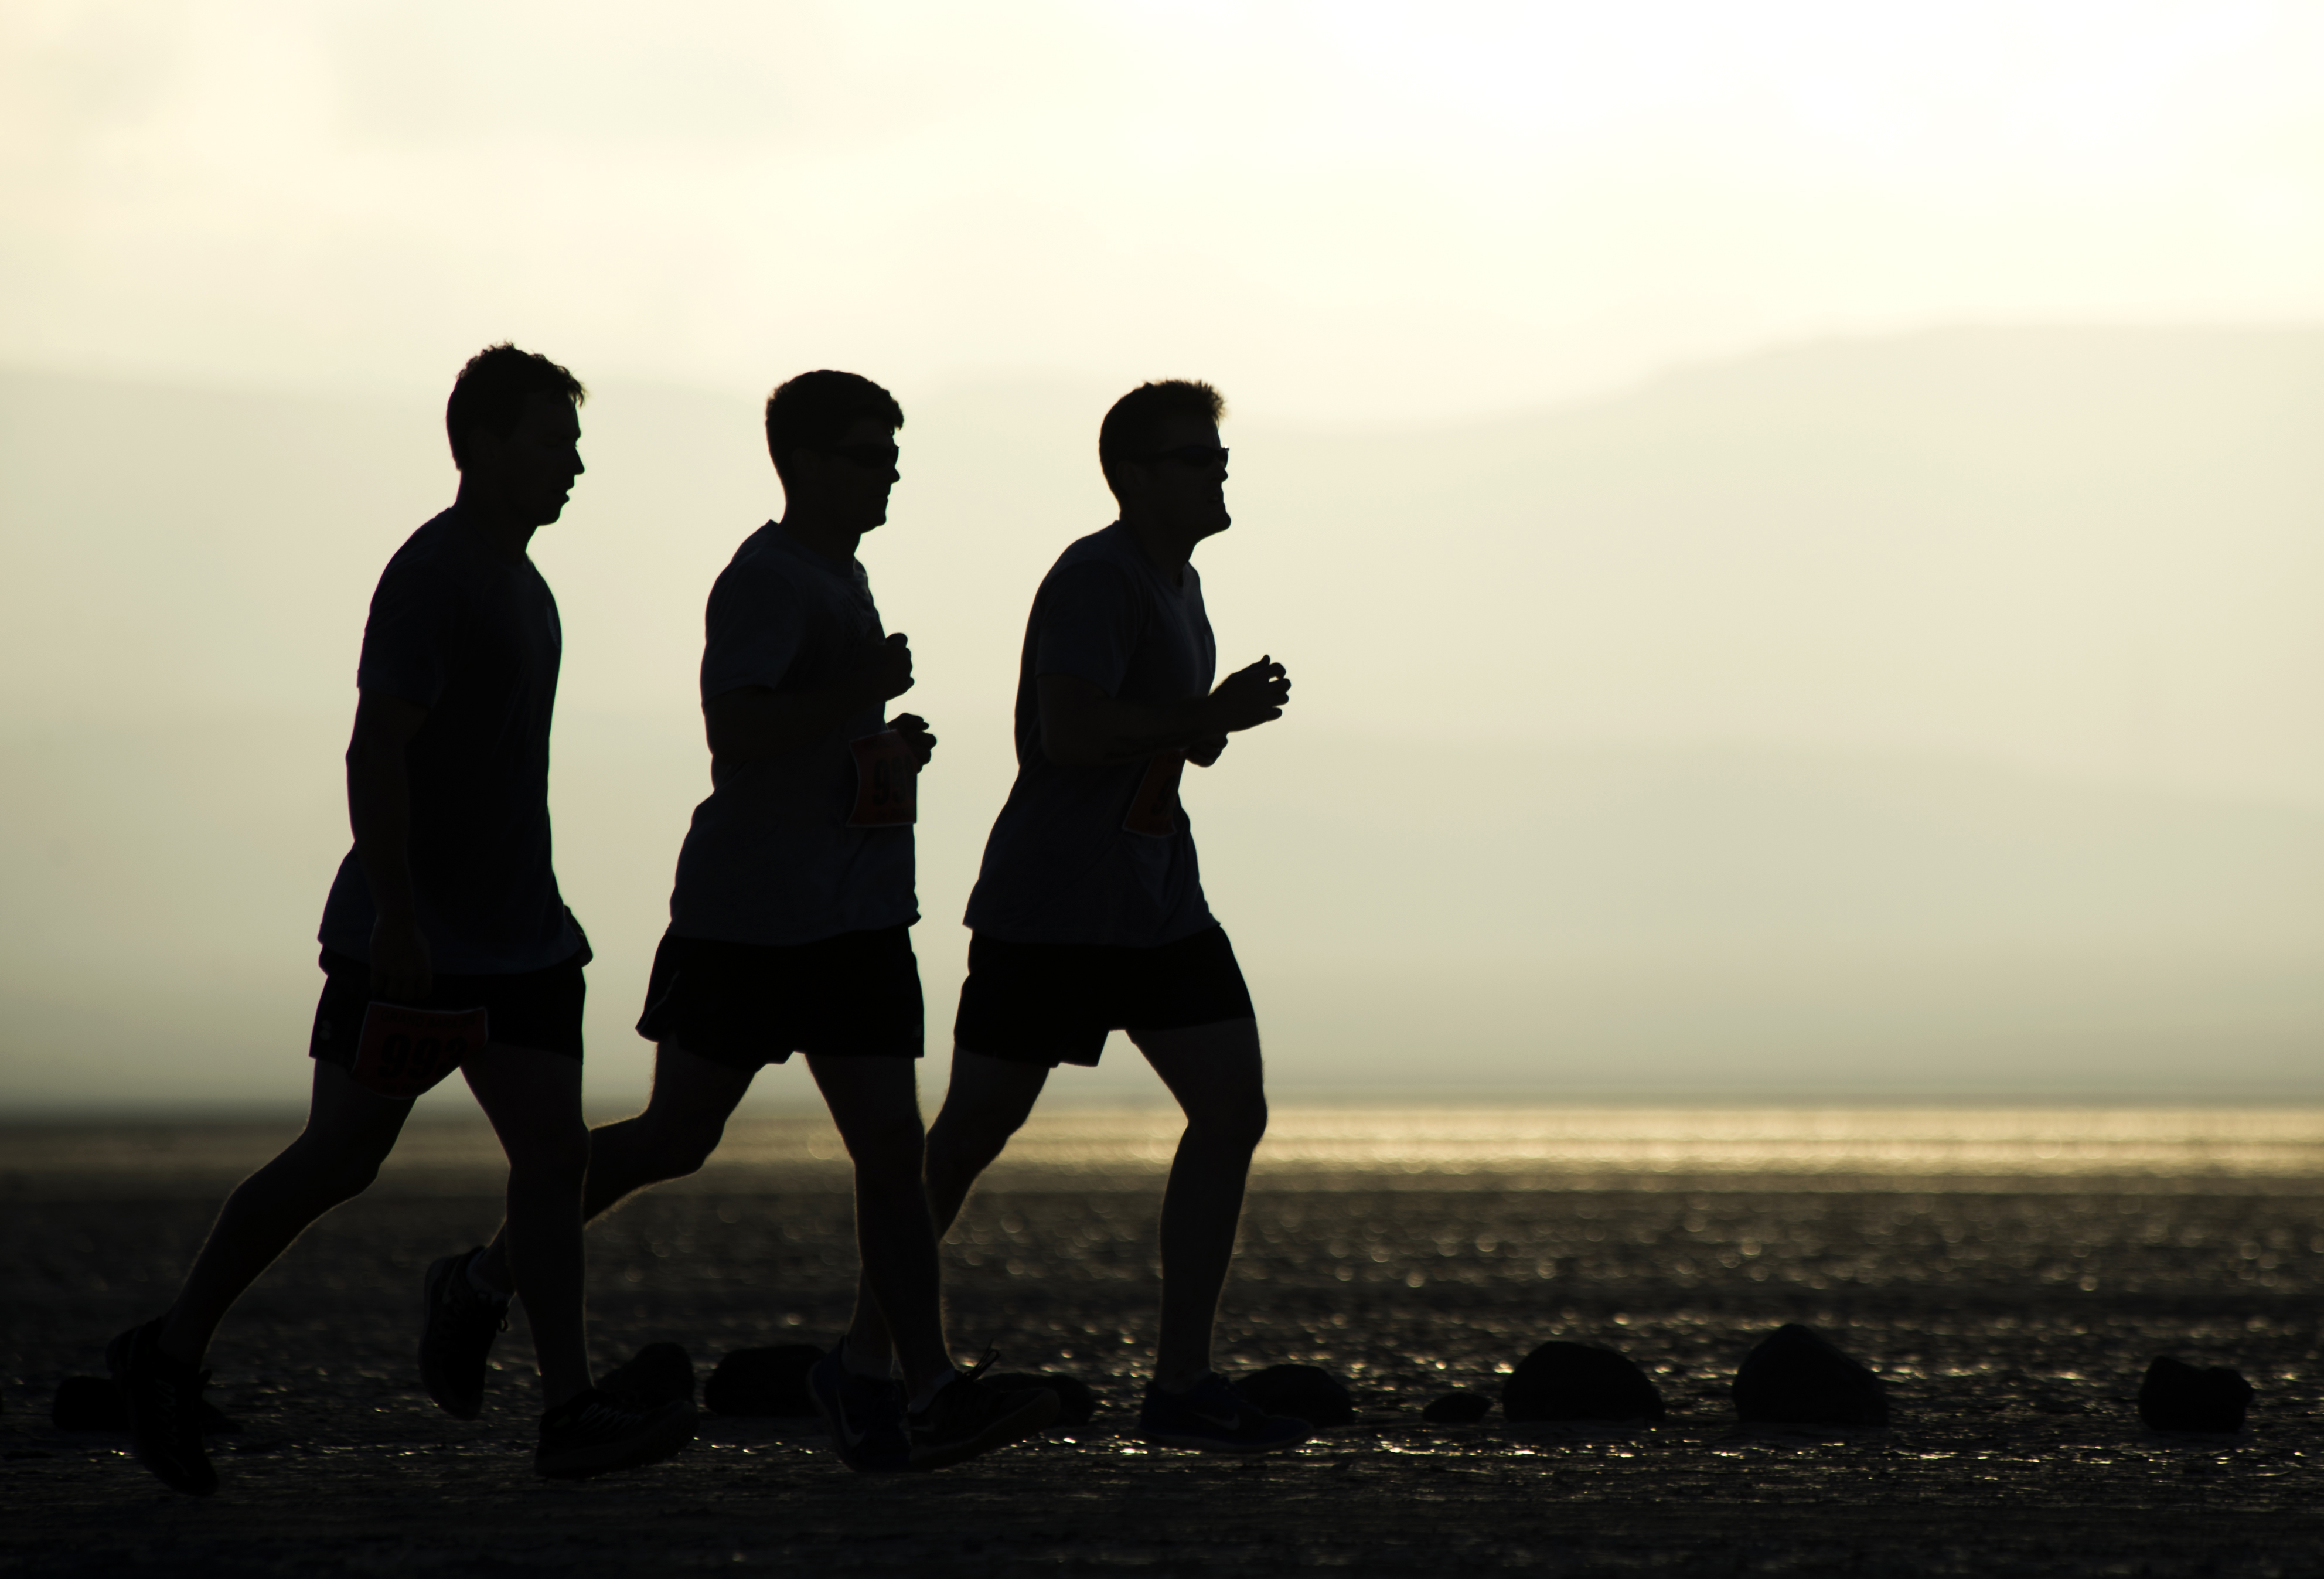 Members of Camp Lemonnier run during the 2015 Grand Bara 15K race Dec. 17, 2015, in Djibouti. The Grand Bara is a desert in southern Djibouti consisting of large areas of sand flats, with sparse, semi-desert and desert grasses and scrub vegetation.  (U.S. Air Force photo by Senior Airman Peter Thompson)